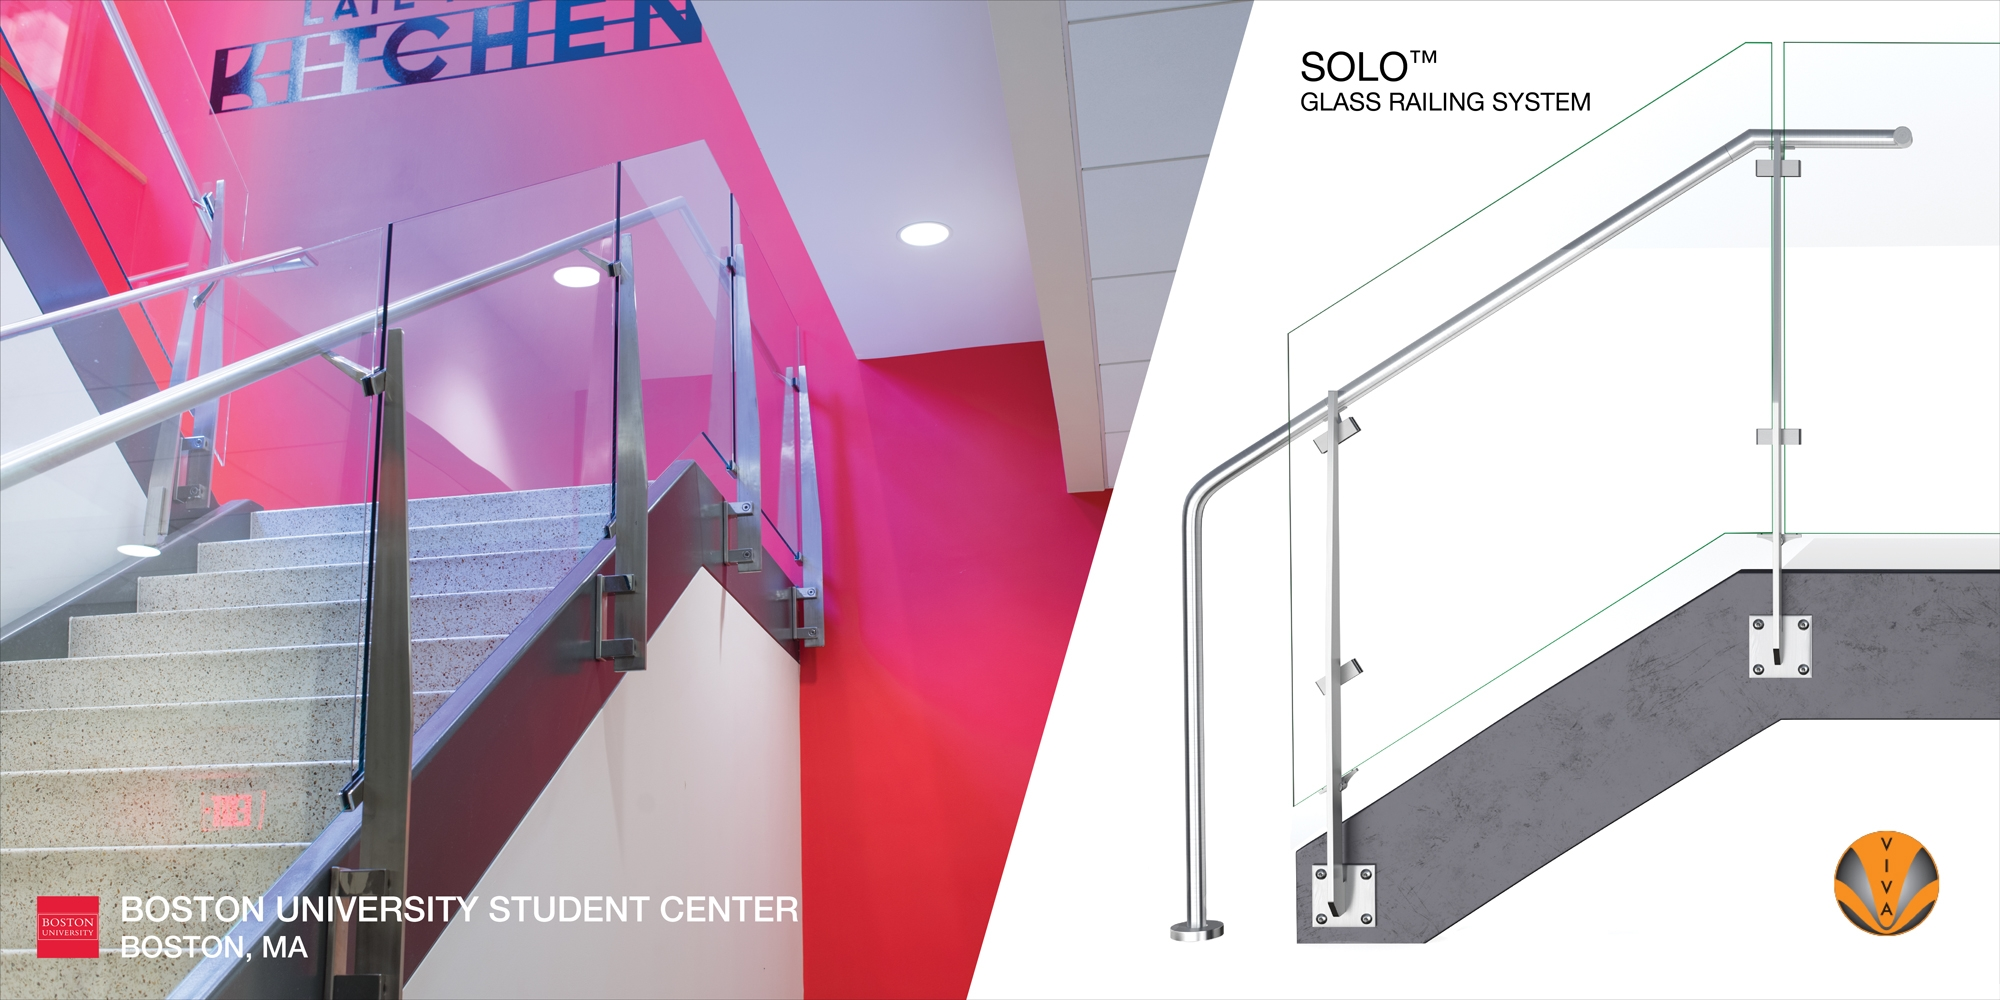 Solo Slim Line Glass Railing Boston University Student Center   Glass Railing For Stairs Price   Railing Systems   Cable Railing   Alibaba   China   Wood